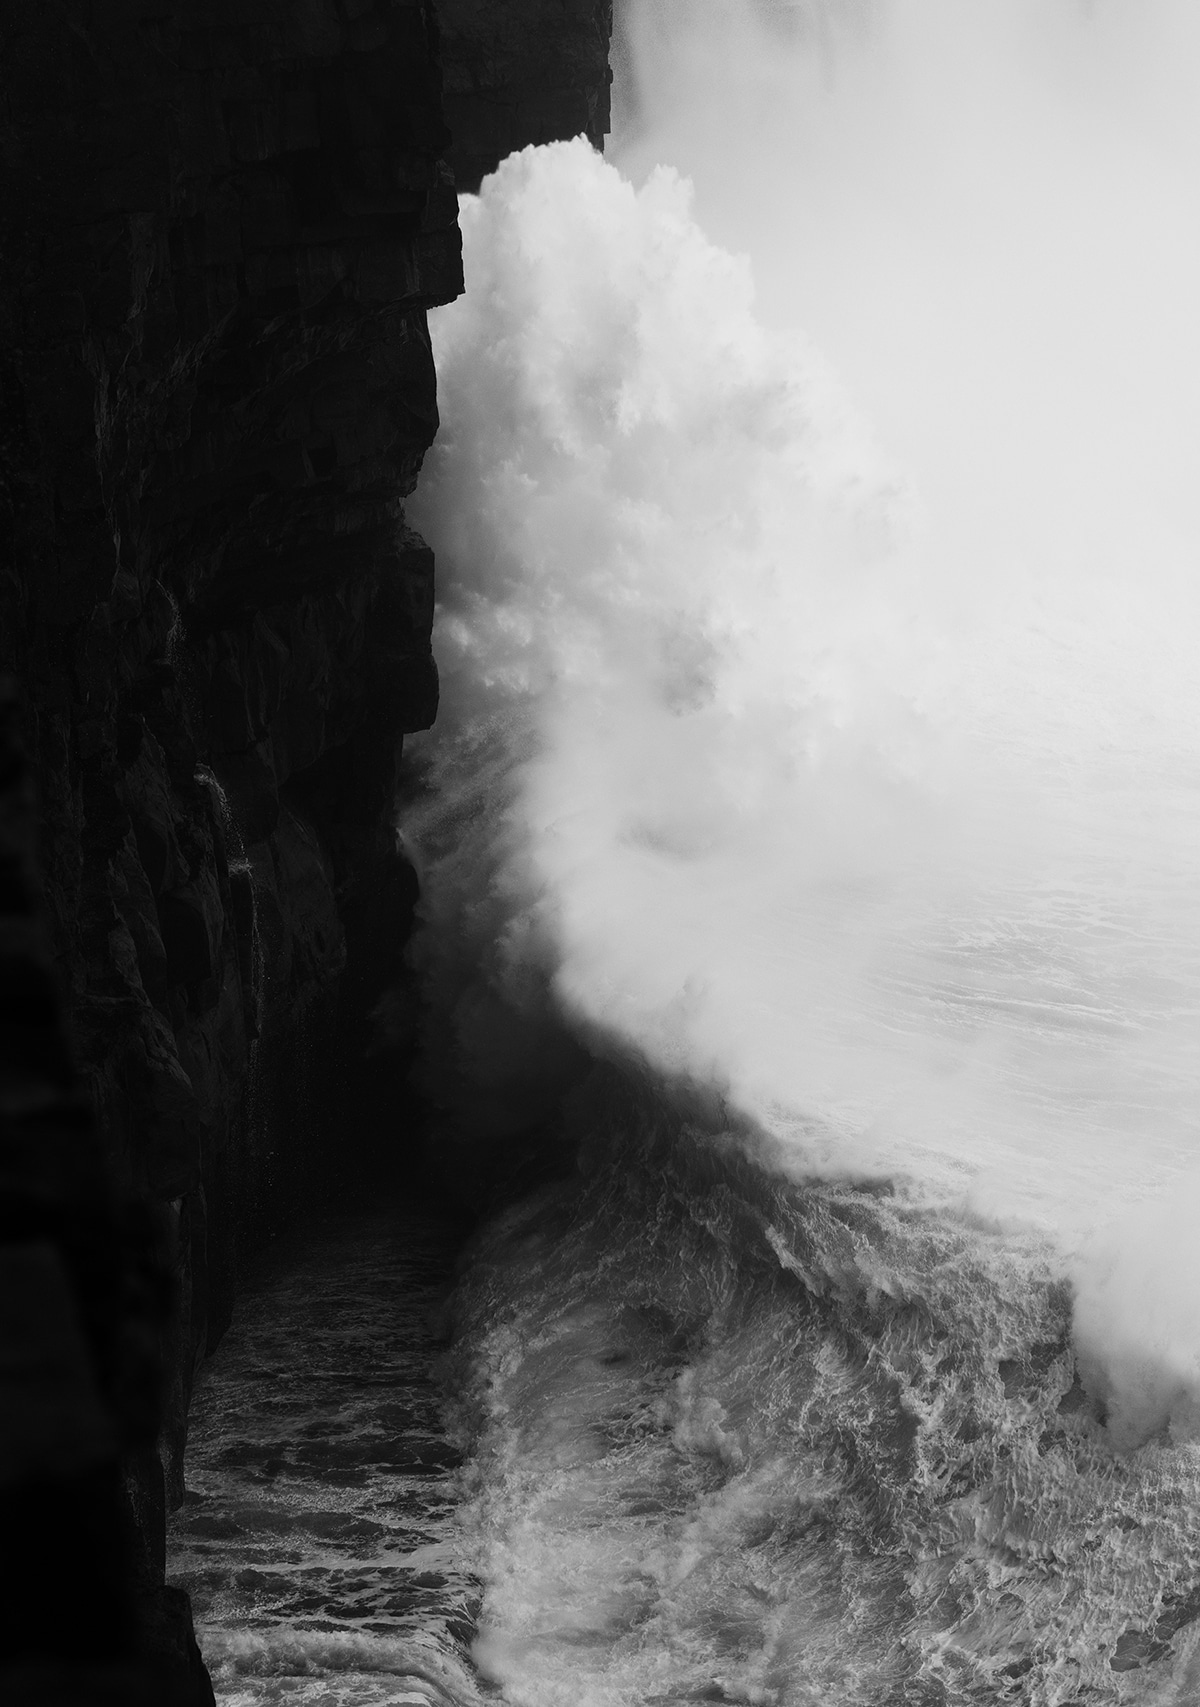 Photographie de vague incroyable par Luke Shadbolt